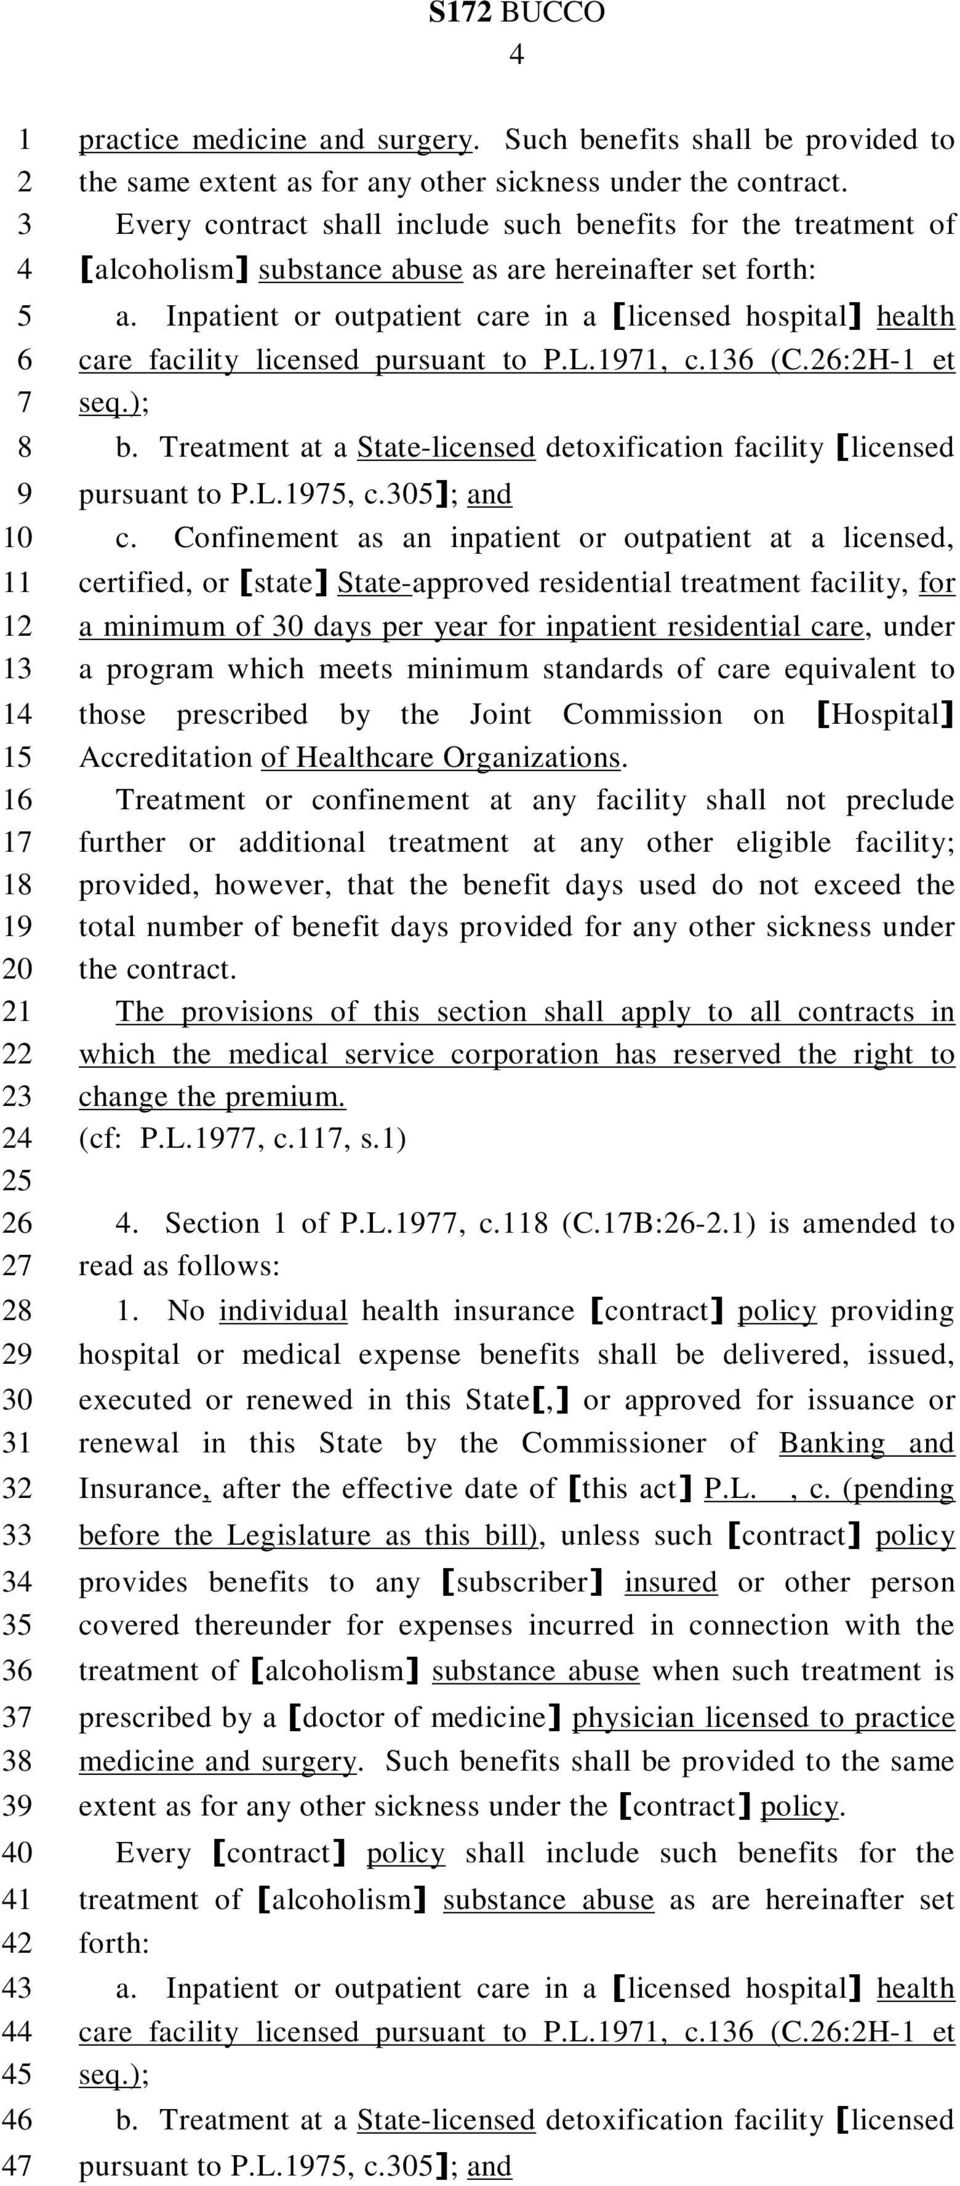 Inpatient or outpatient care in a [licensed hospital] health care facility licensed pursuant to P.L., c.